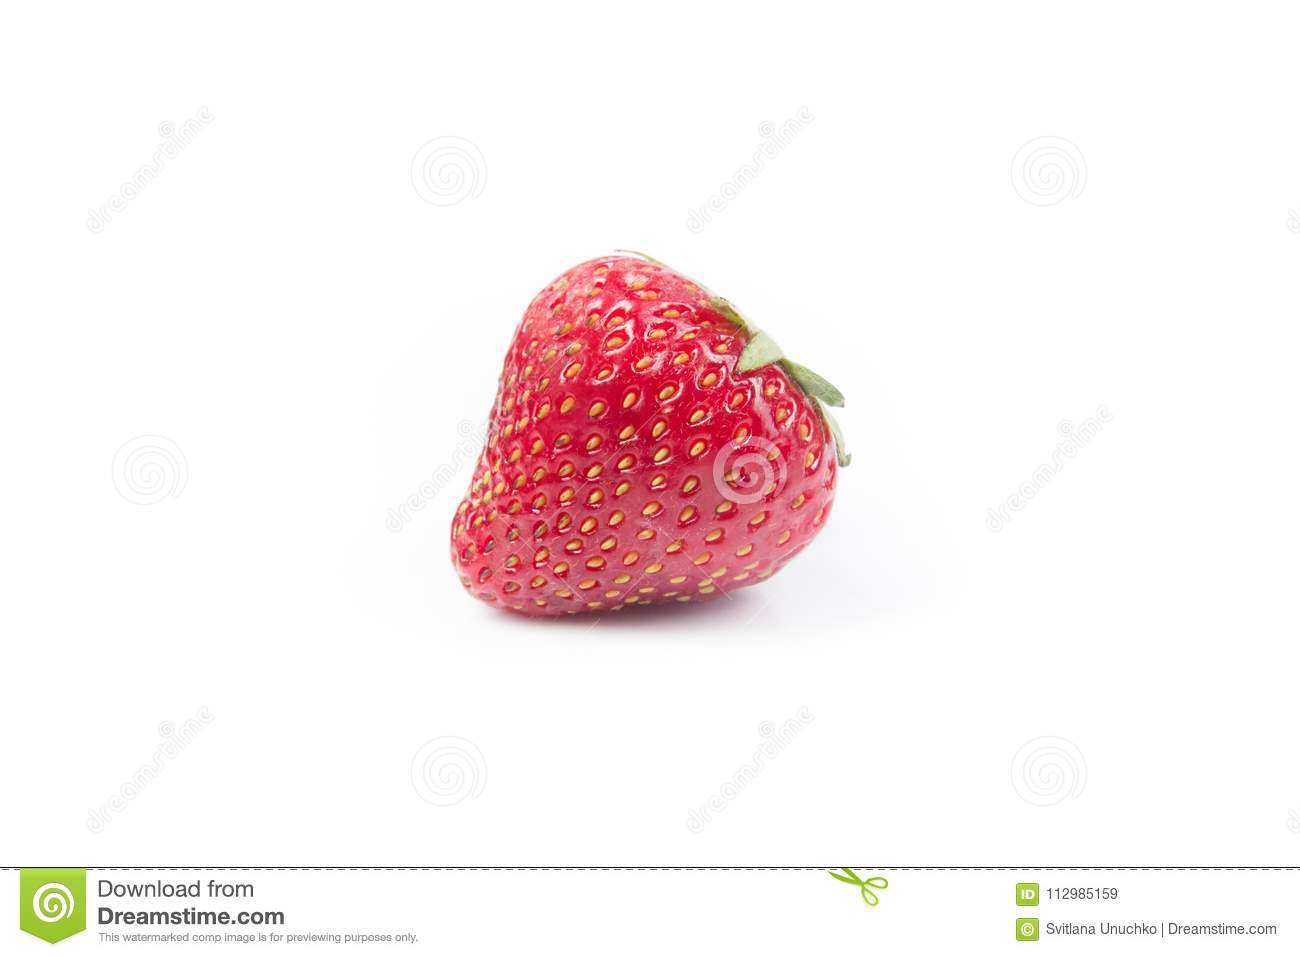 Fresh ripe Strawberry berry in closeup on isolated white background. Berries